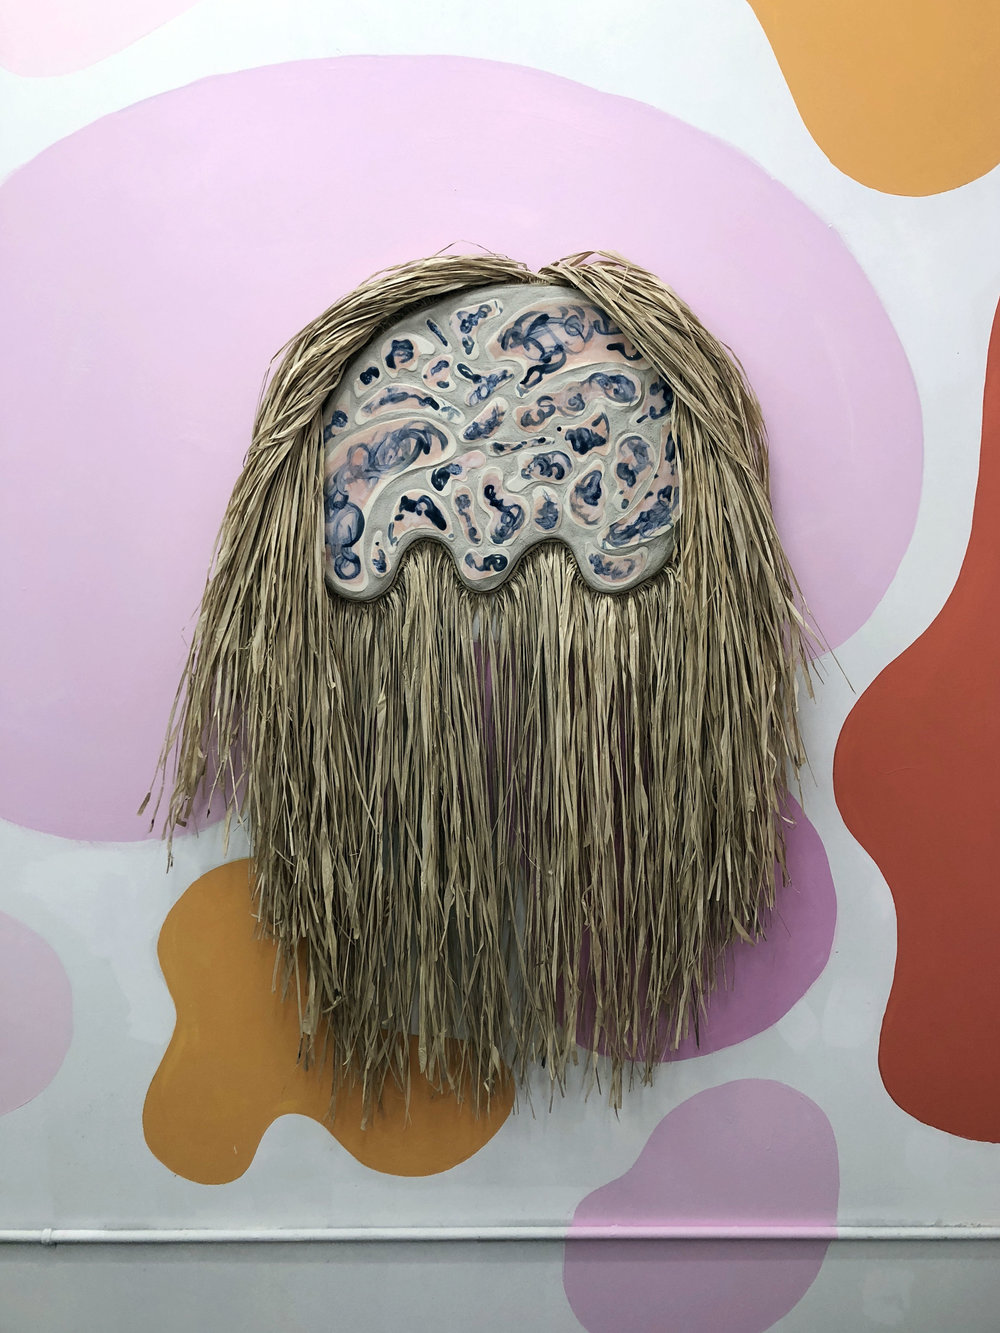 Desert Wildman II  , 2018, raffia, porcelain, sand on wood panel, 34 x 52 inches